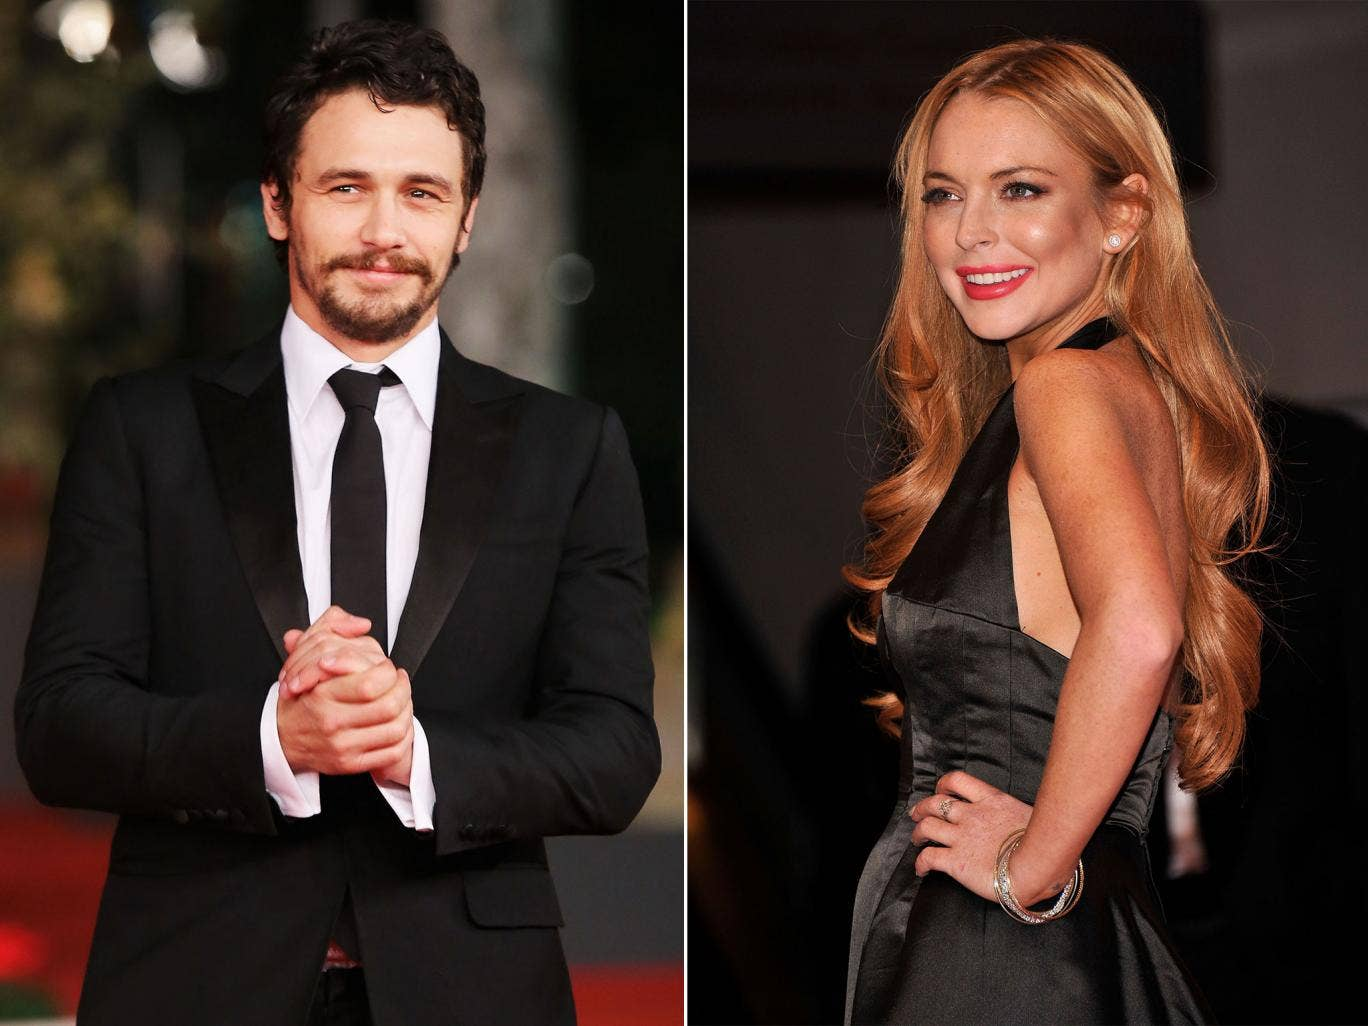 James Franco and Lindsay Lohan did not sleep together according to Franco, after Lohan published a list of her past lovers